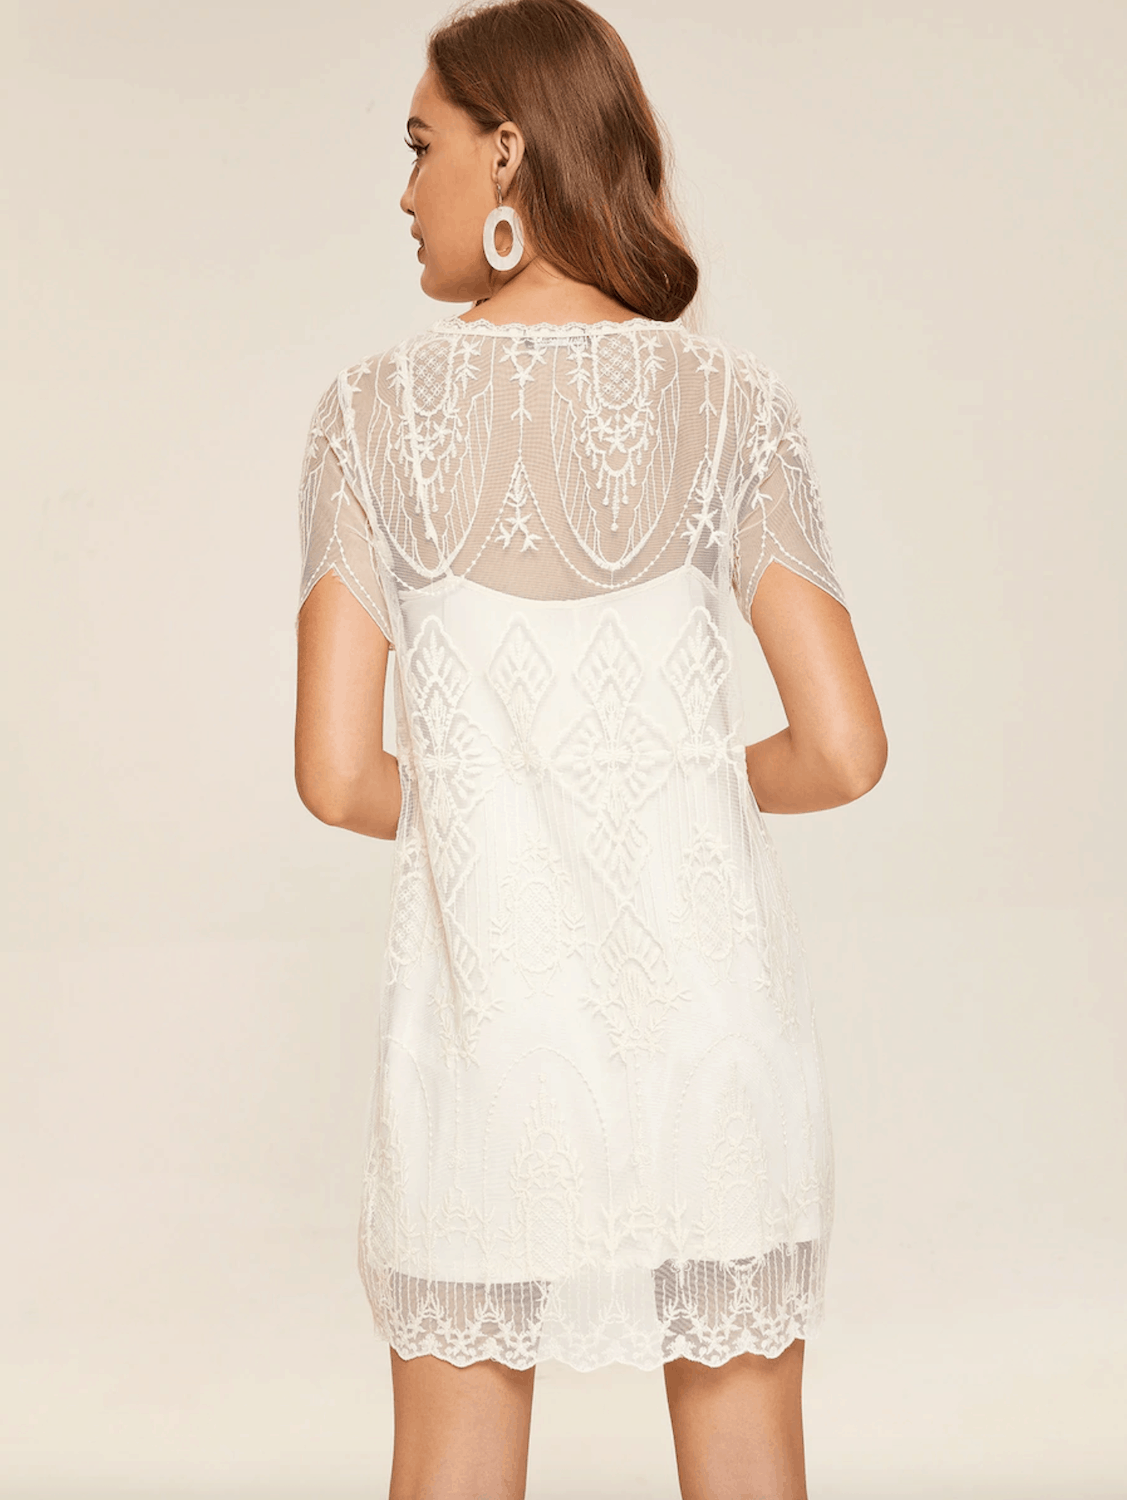 83b145102c6 Prettiest City Hall Wedding Dresses and Courthouse Bridal Outfits Solid  Cami Dress Embroidery Lace Dresses